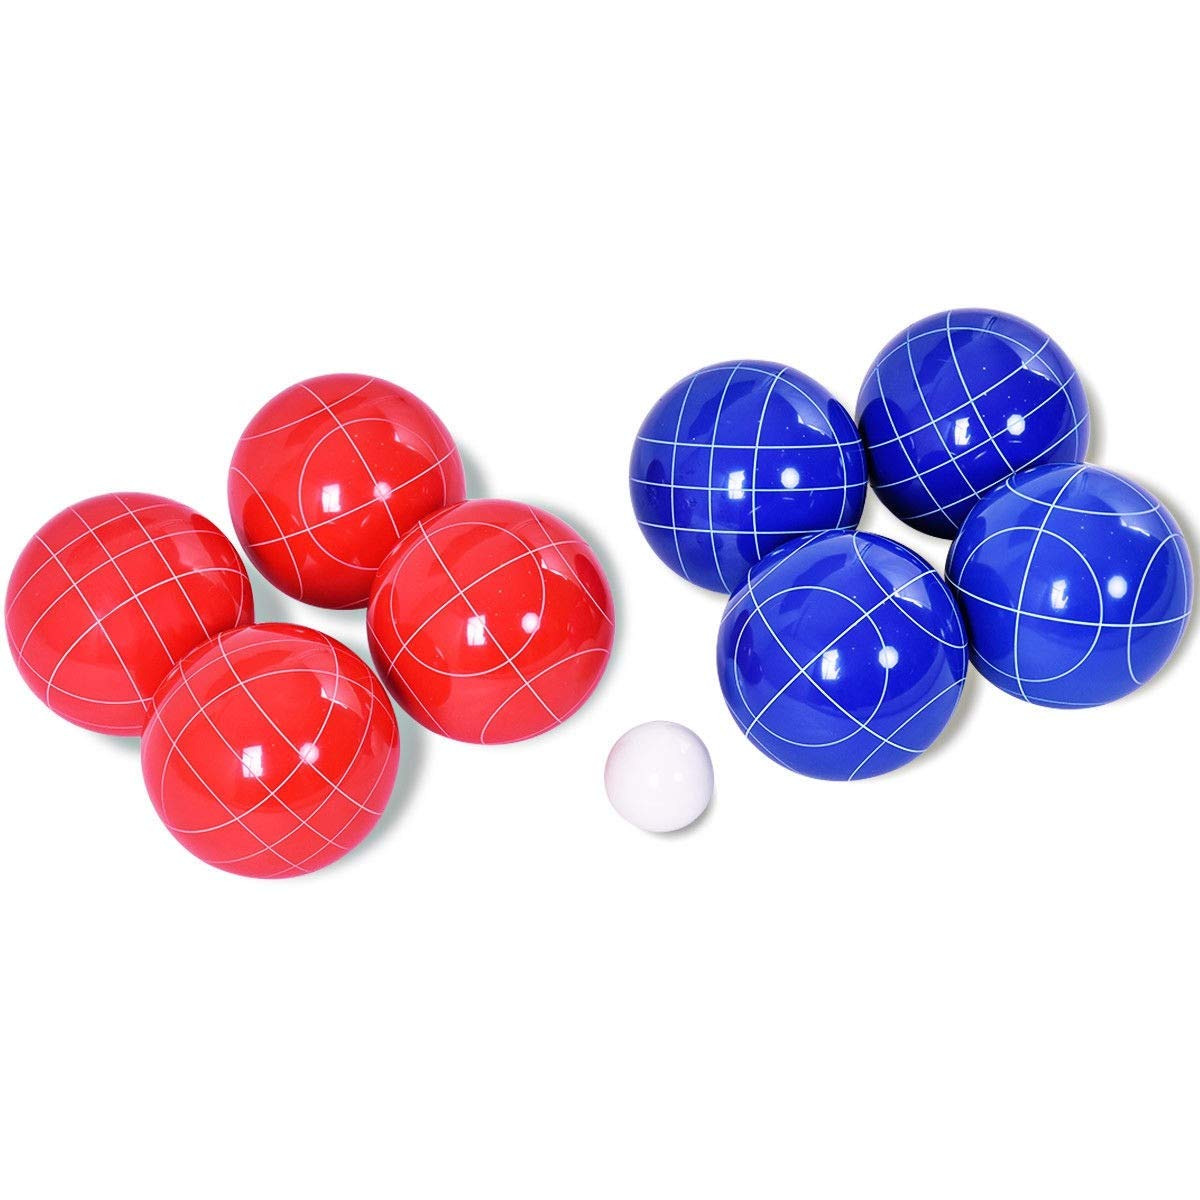 LordBee Resin New Nice Backyard Bocce Ball Set with 8 Balls Game Play Kids Home Indoor Outdoor Garden Eye-catching Color and Appearance by LordBee